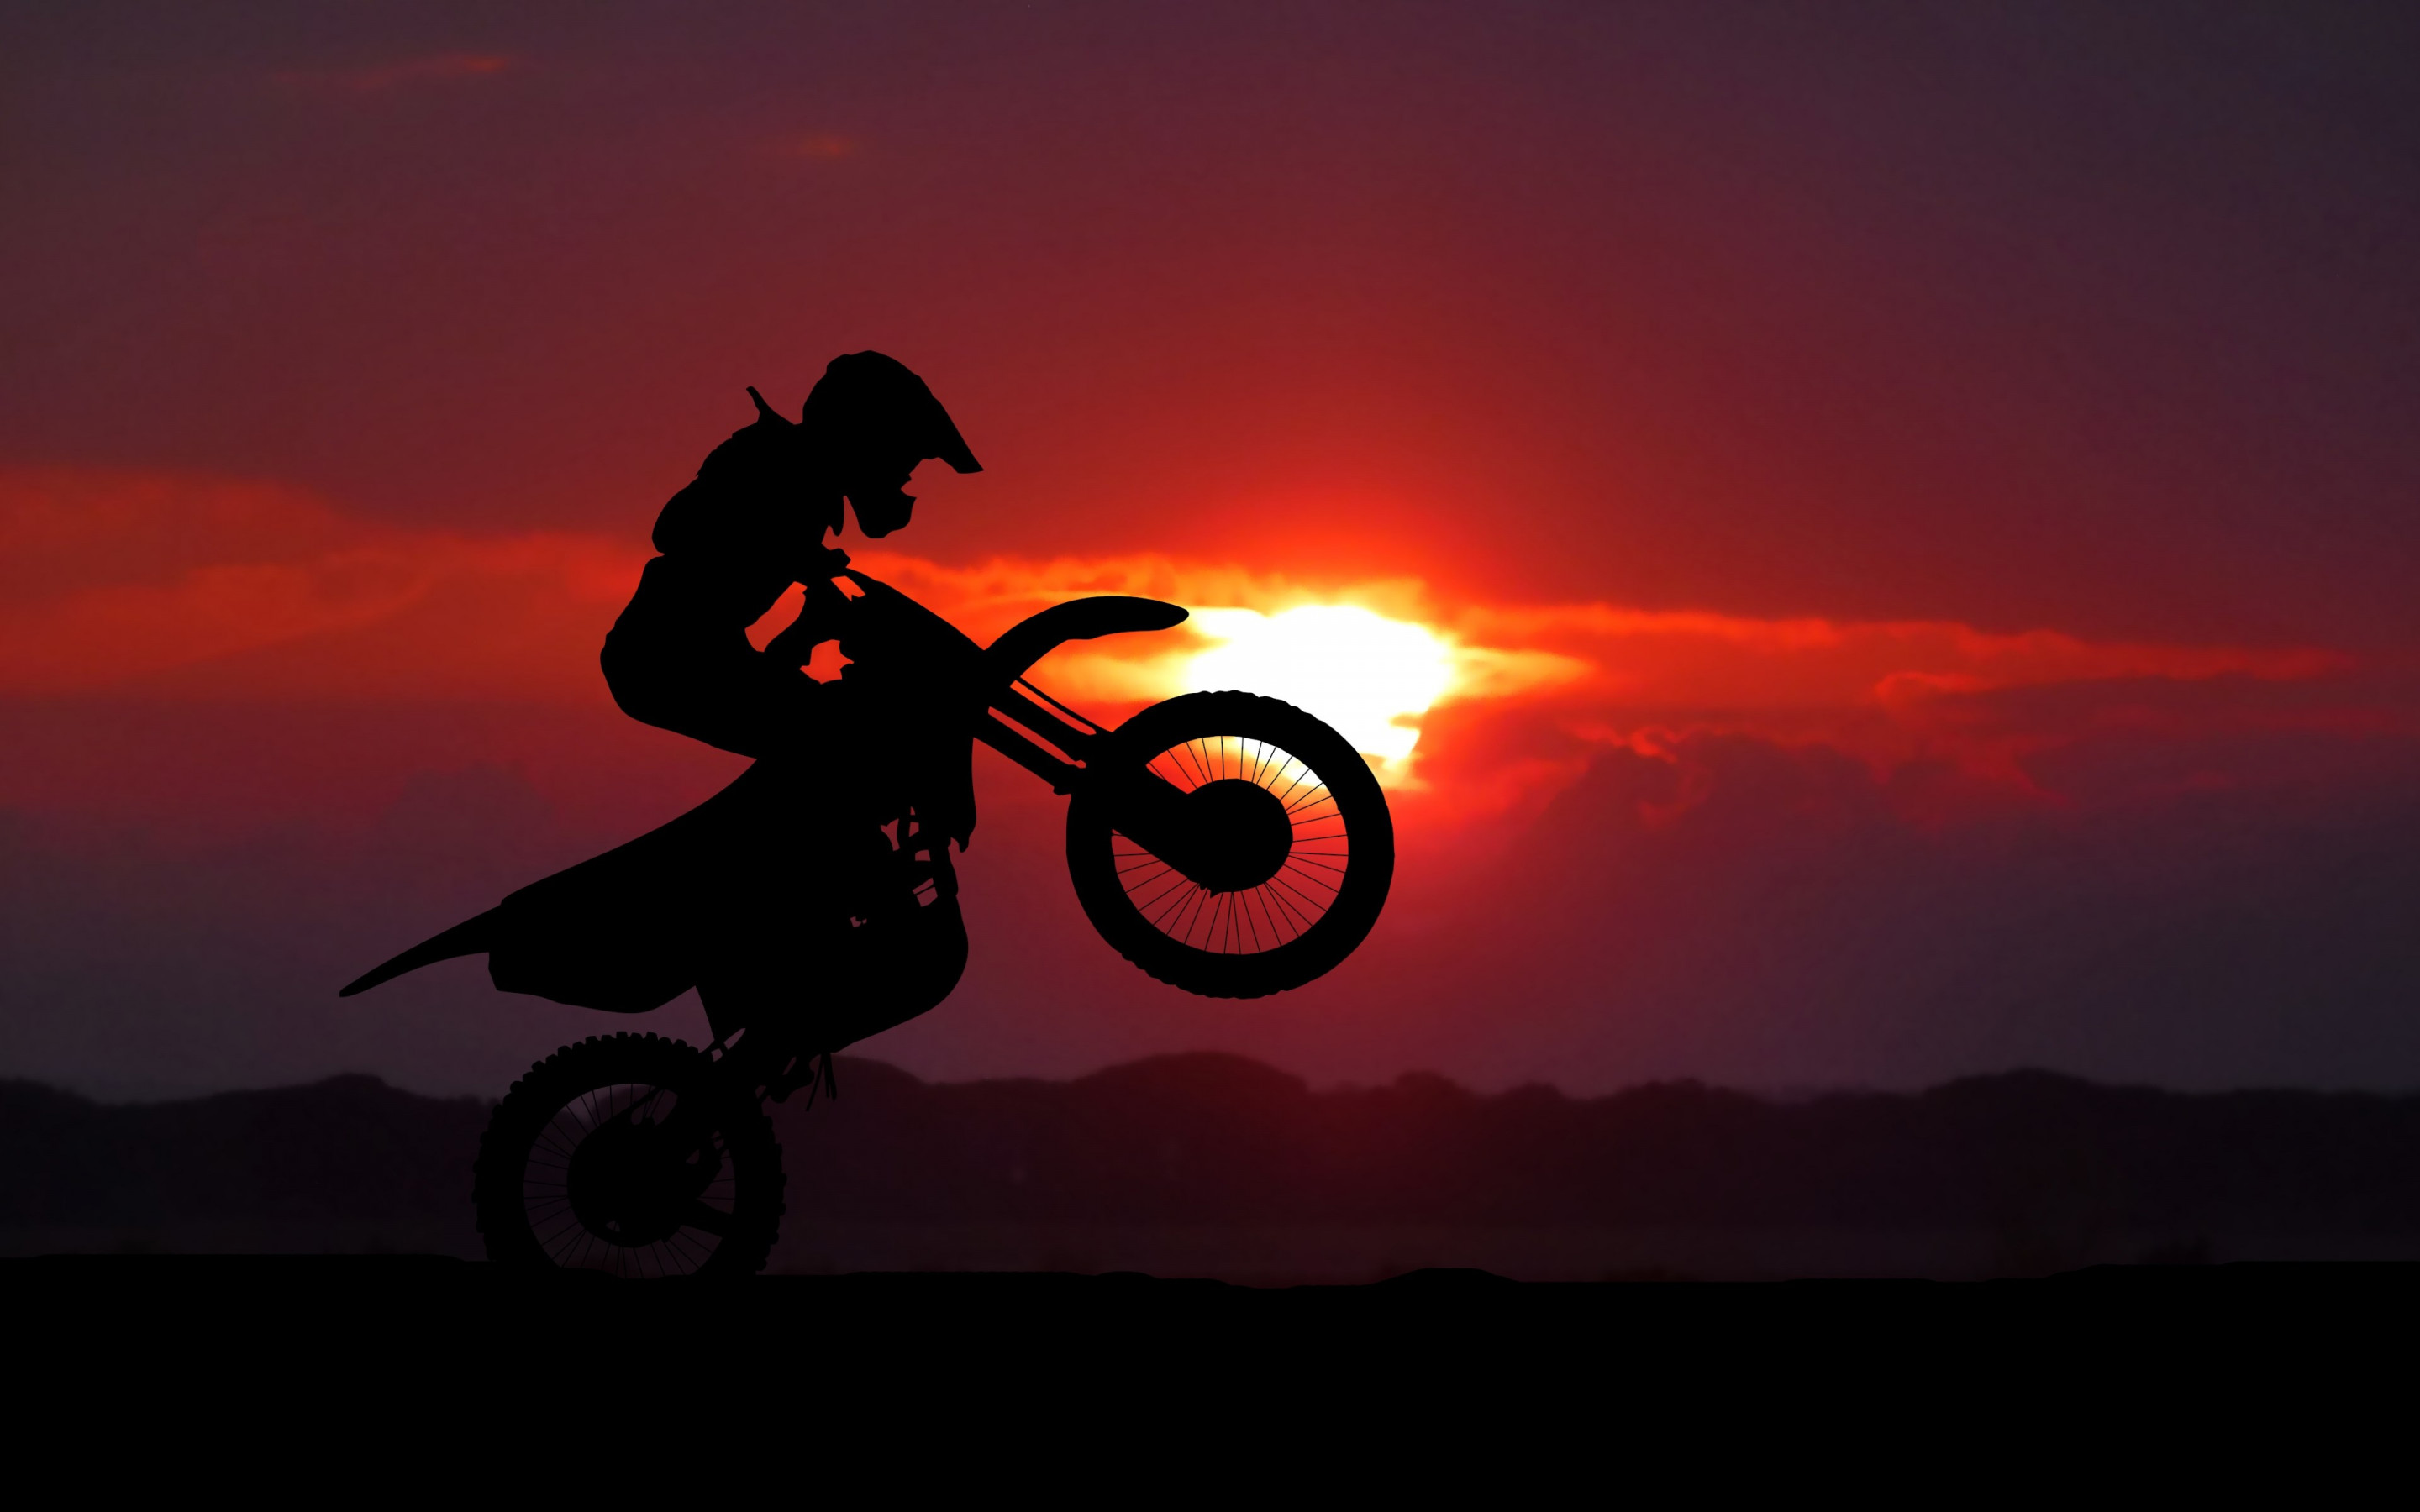 Biker on motorcycle at sunrise wallpaper 2880x1800